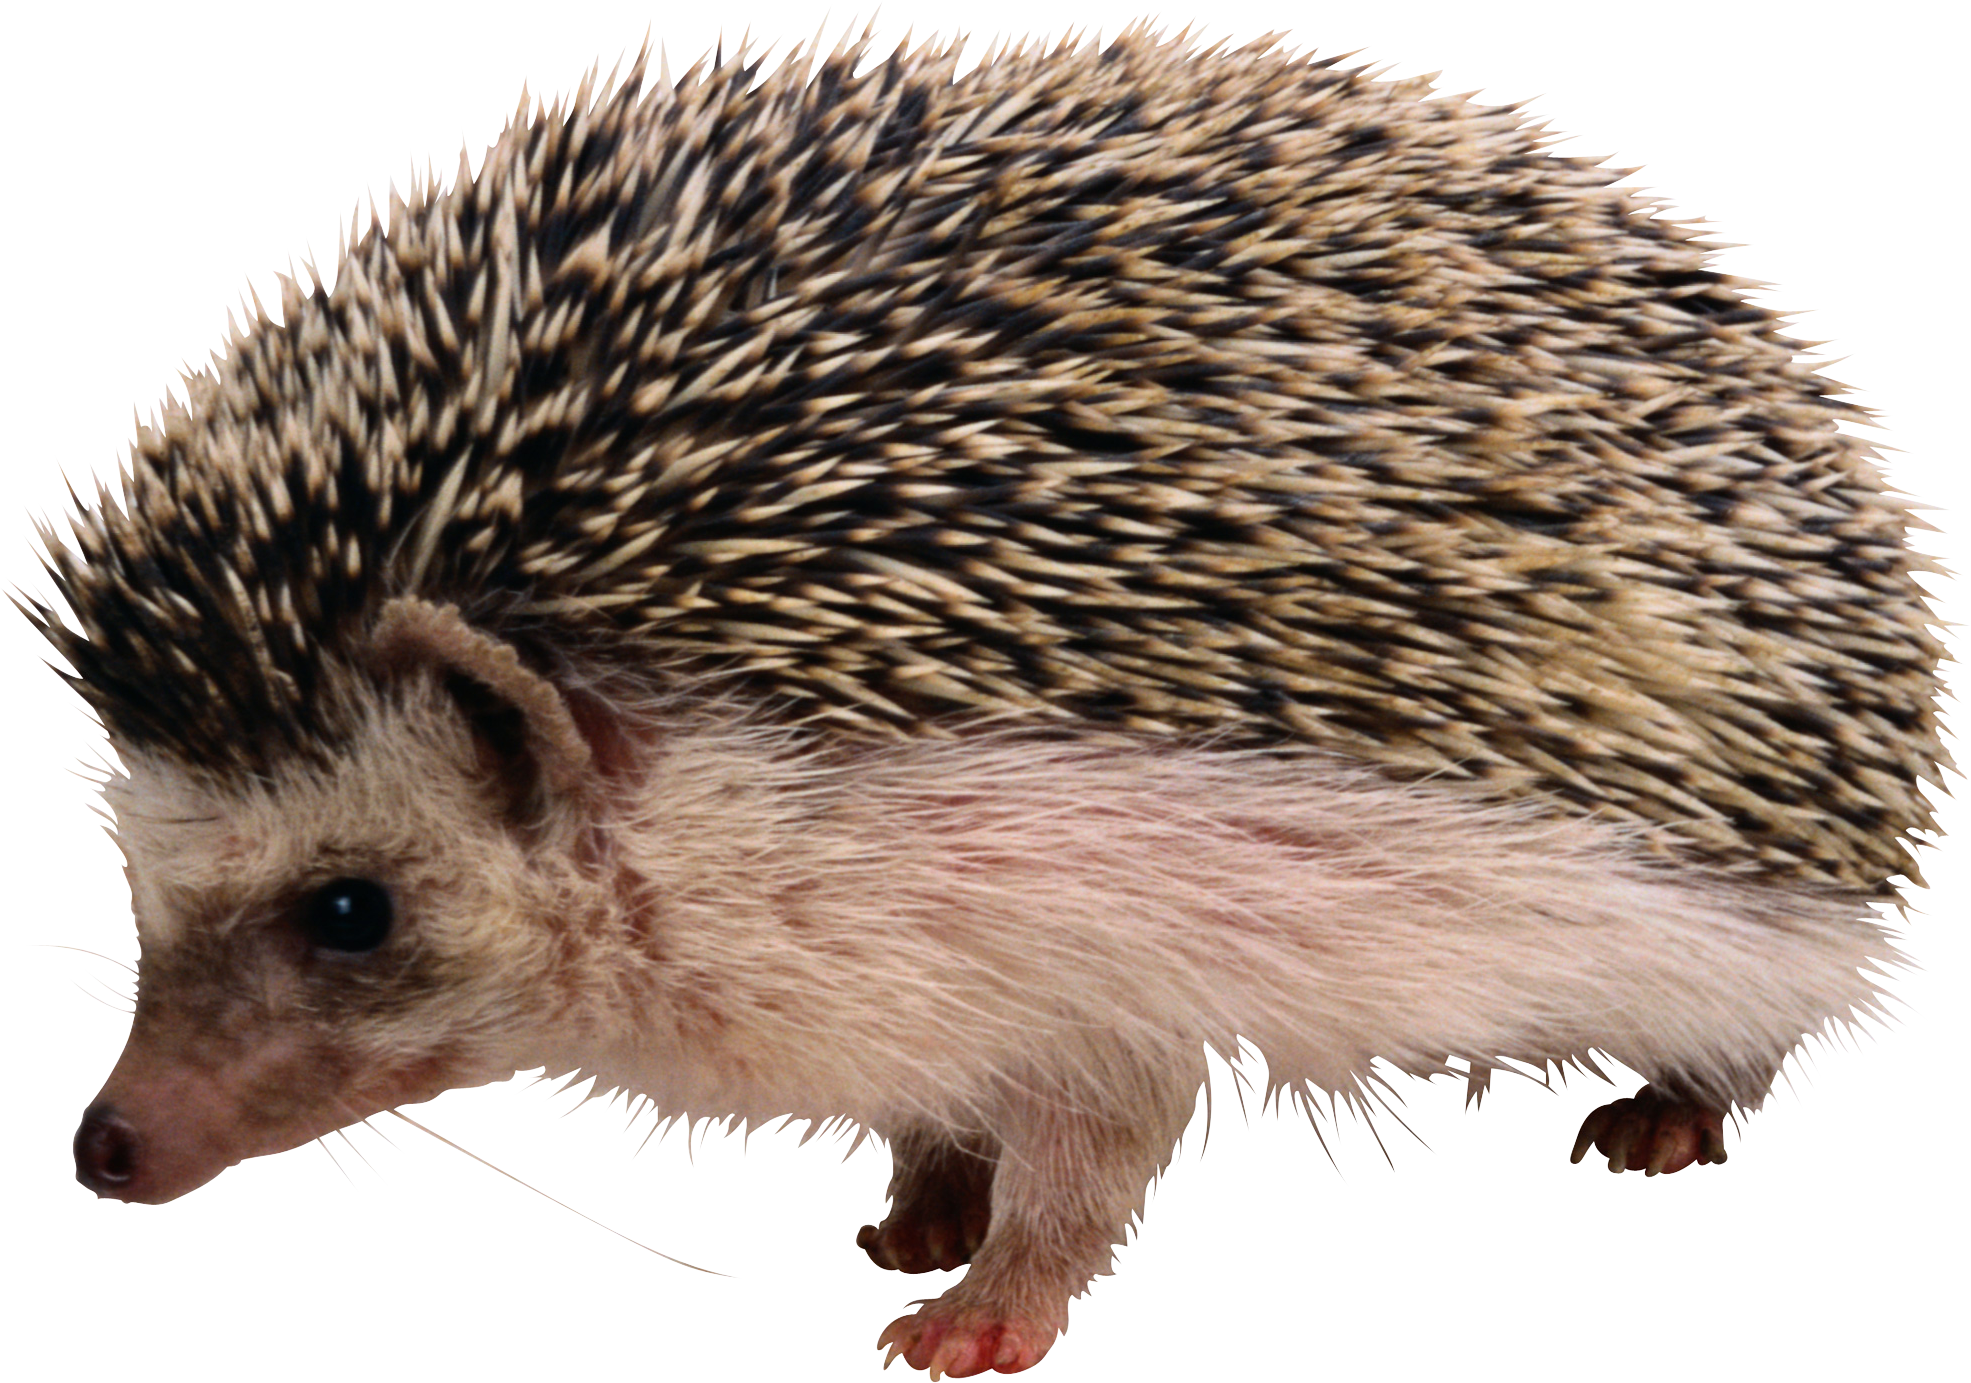 Clipart sleeping hedgehog. Png images free download